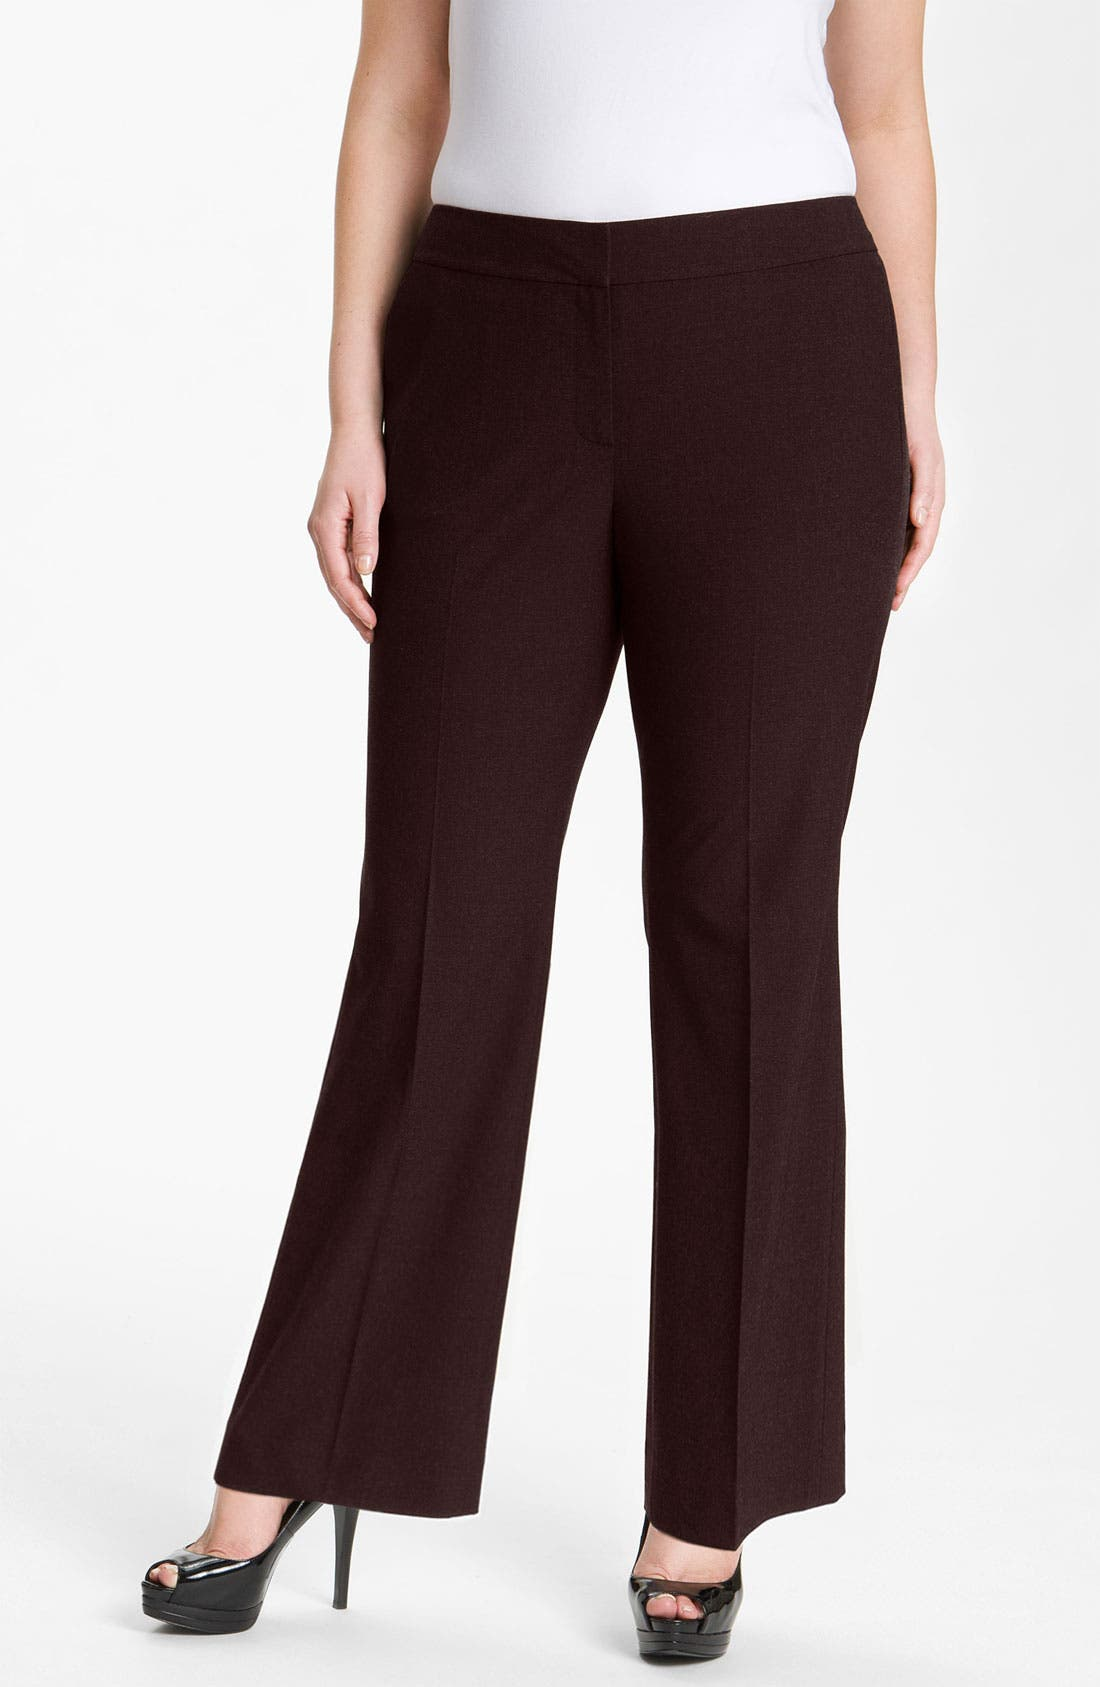 Alternate Image 1 Selected - Sejour 'Ela' Curvy Fit Pants (Plus Size & Petite Plus)